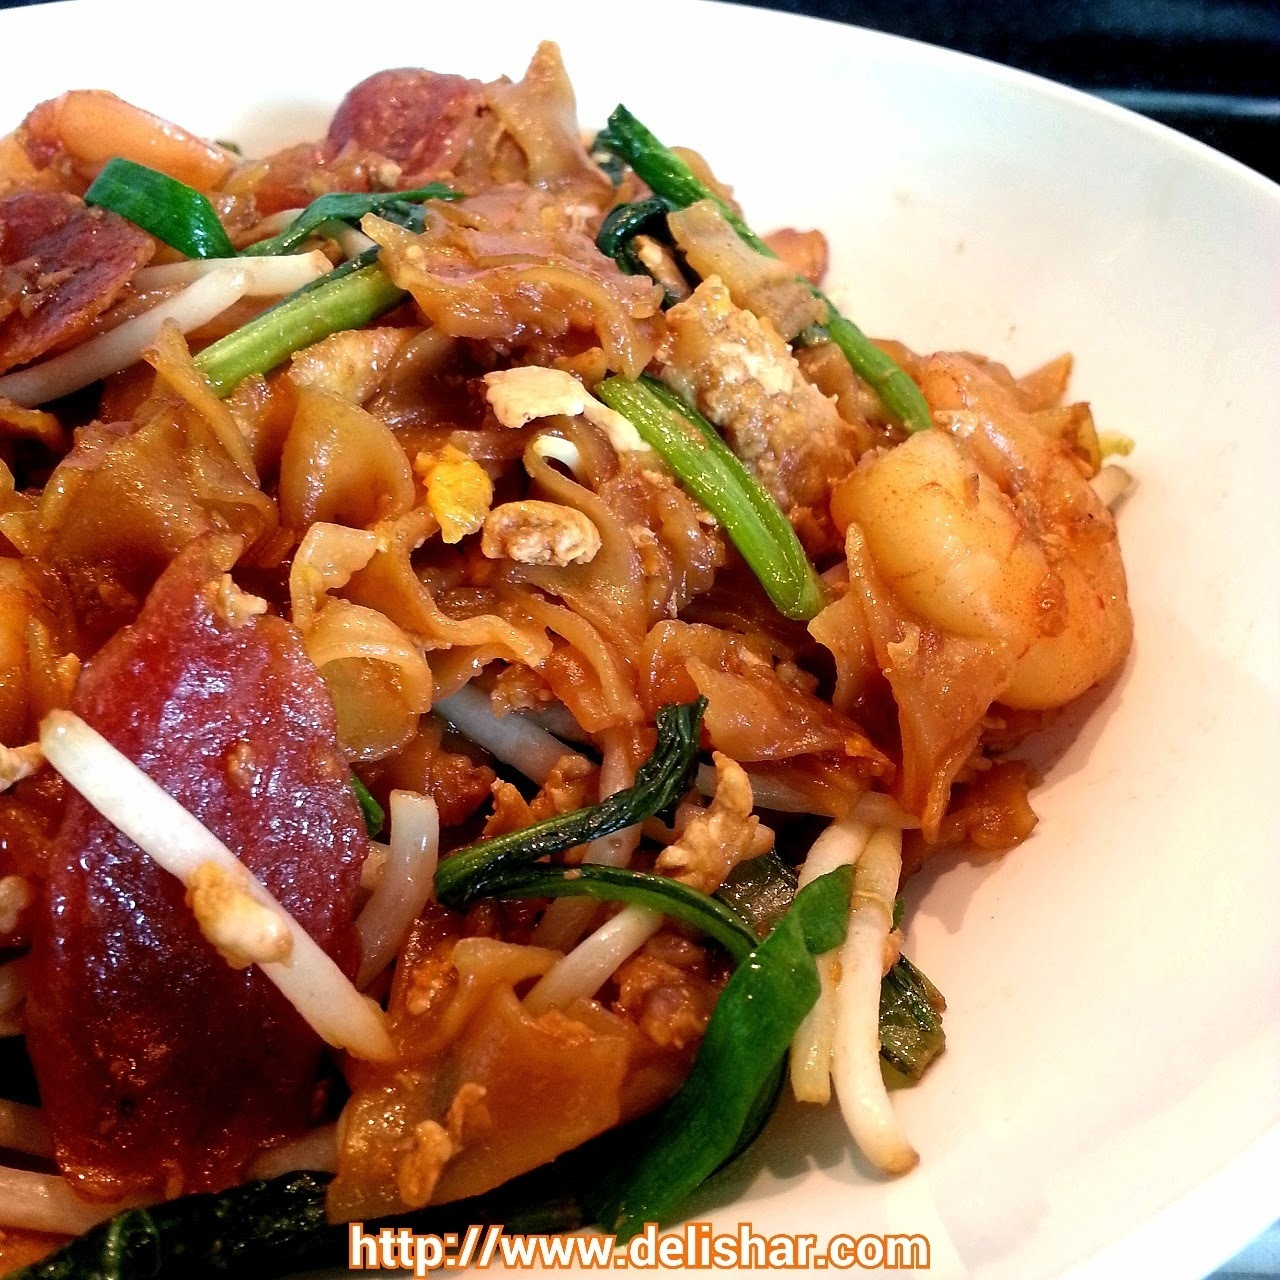 Fried Flat Rice Noodle (Char Kway Teow)